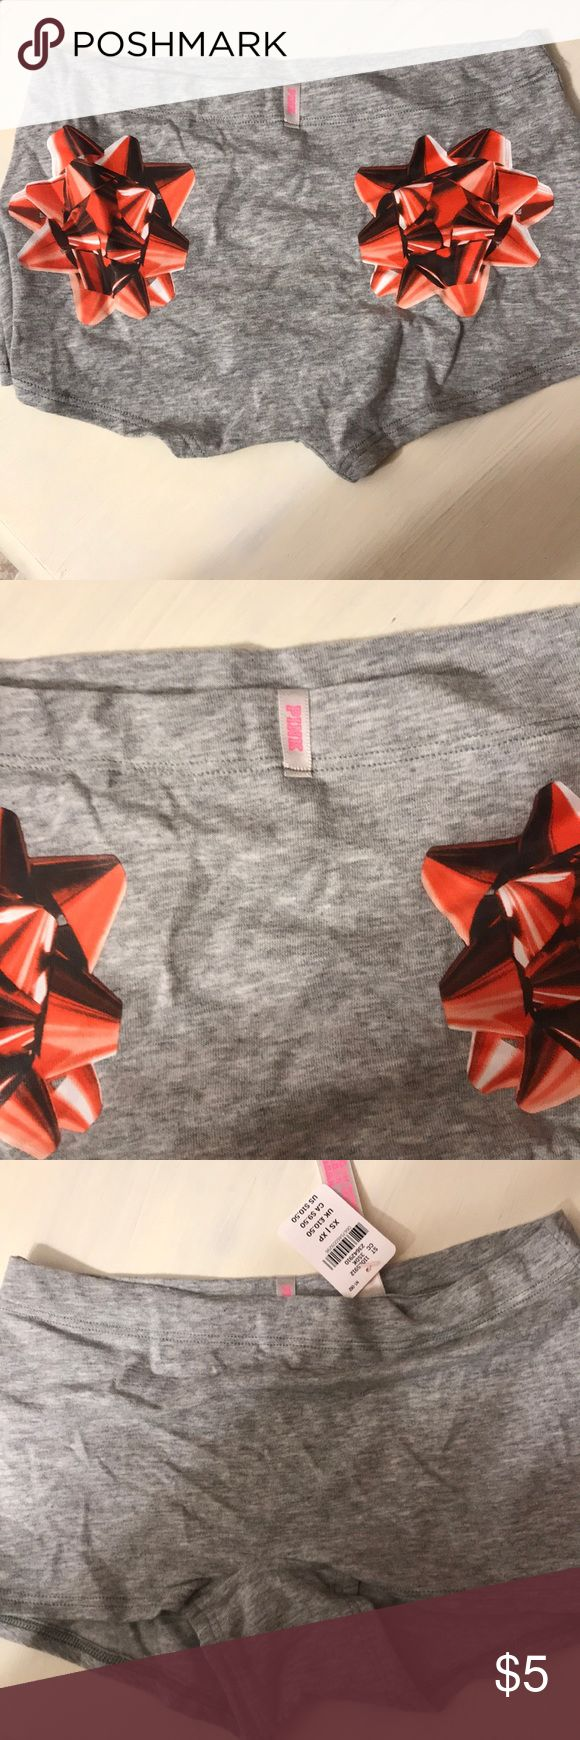 9bb7f802d817 XS NWT Victoria's Secret PINK boy-shorts Grey with red bows on back. PINK